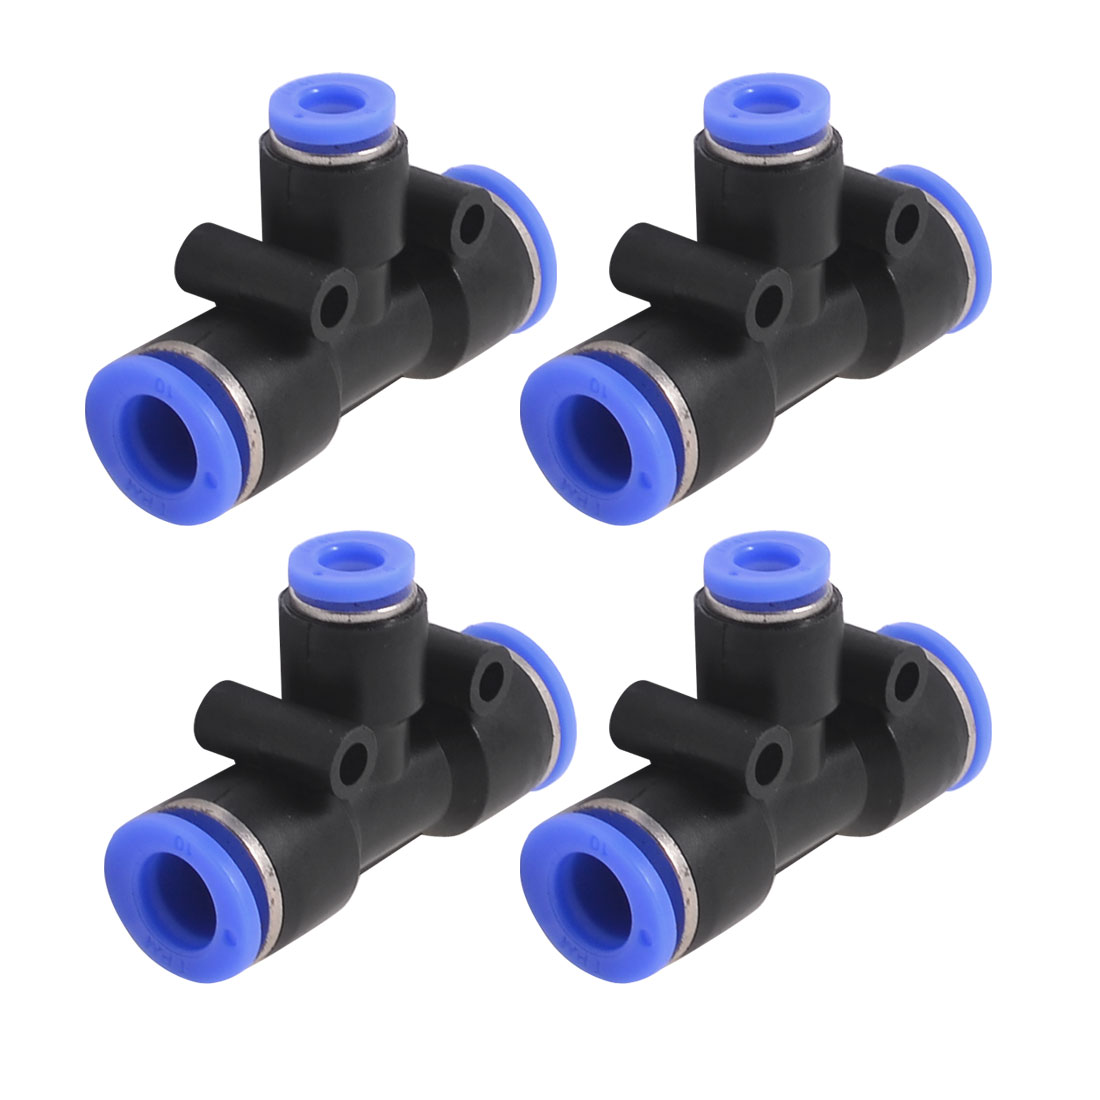 10mm x 6mm T Joint Pneumatic One Touch Tube Connector Quick Fittings Couplers 4PCS